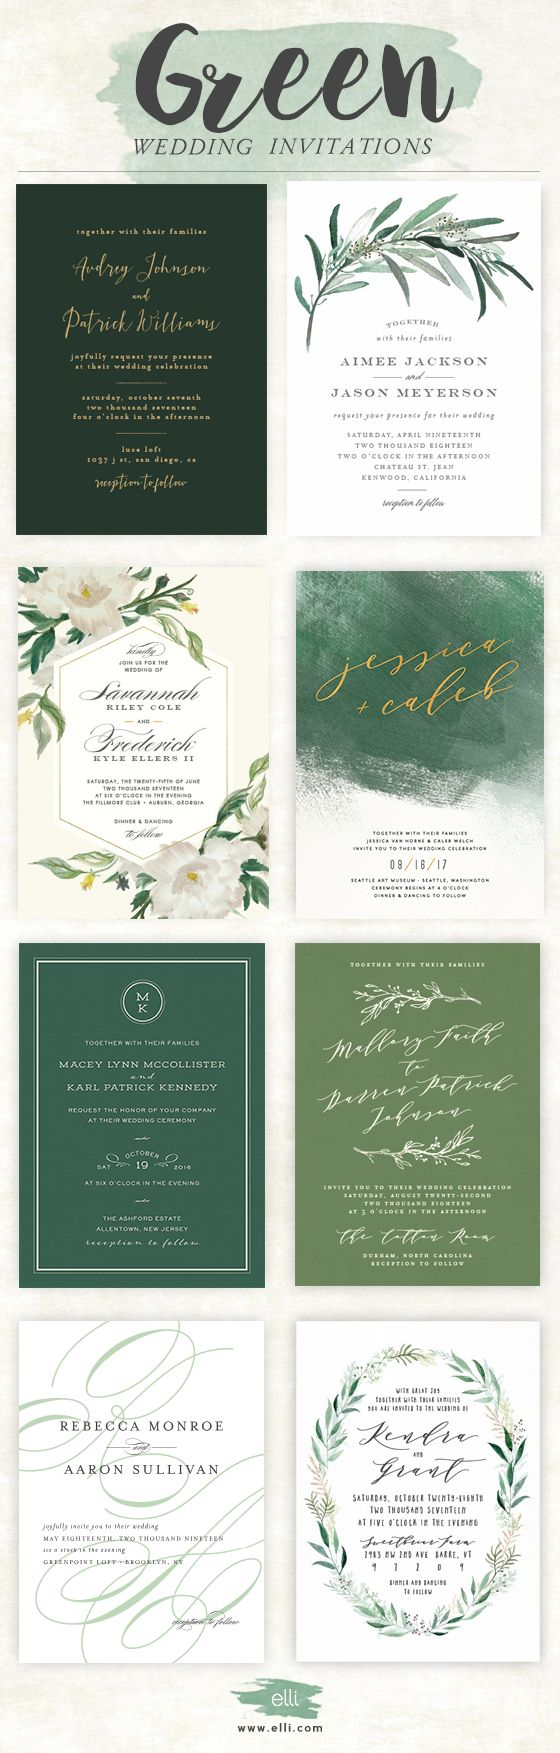 not on the high street winter wedding invitations%0A Gorgeous selection of green wedding invitations from Elli com